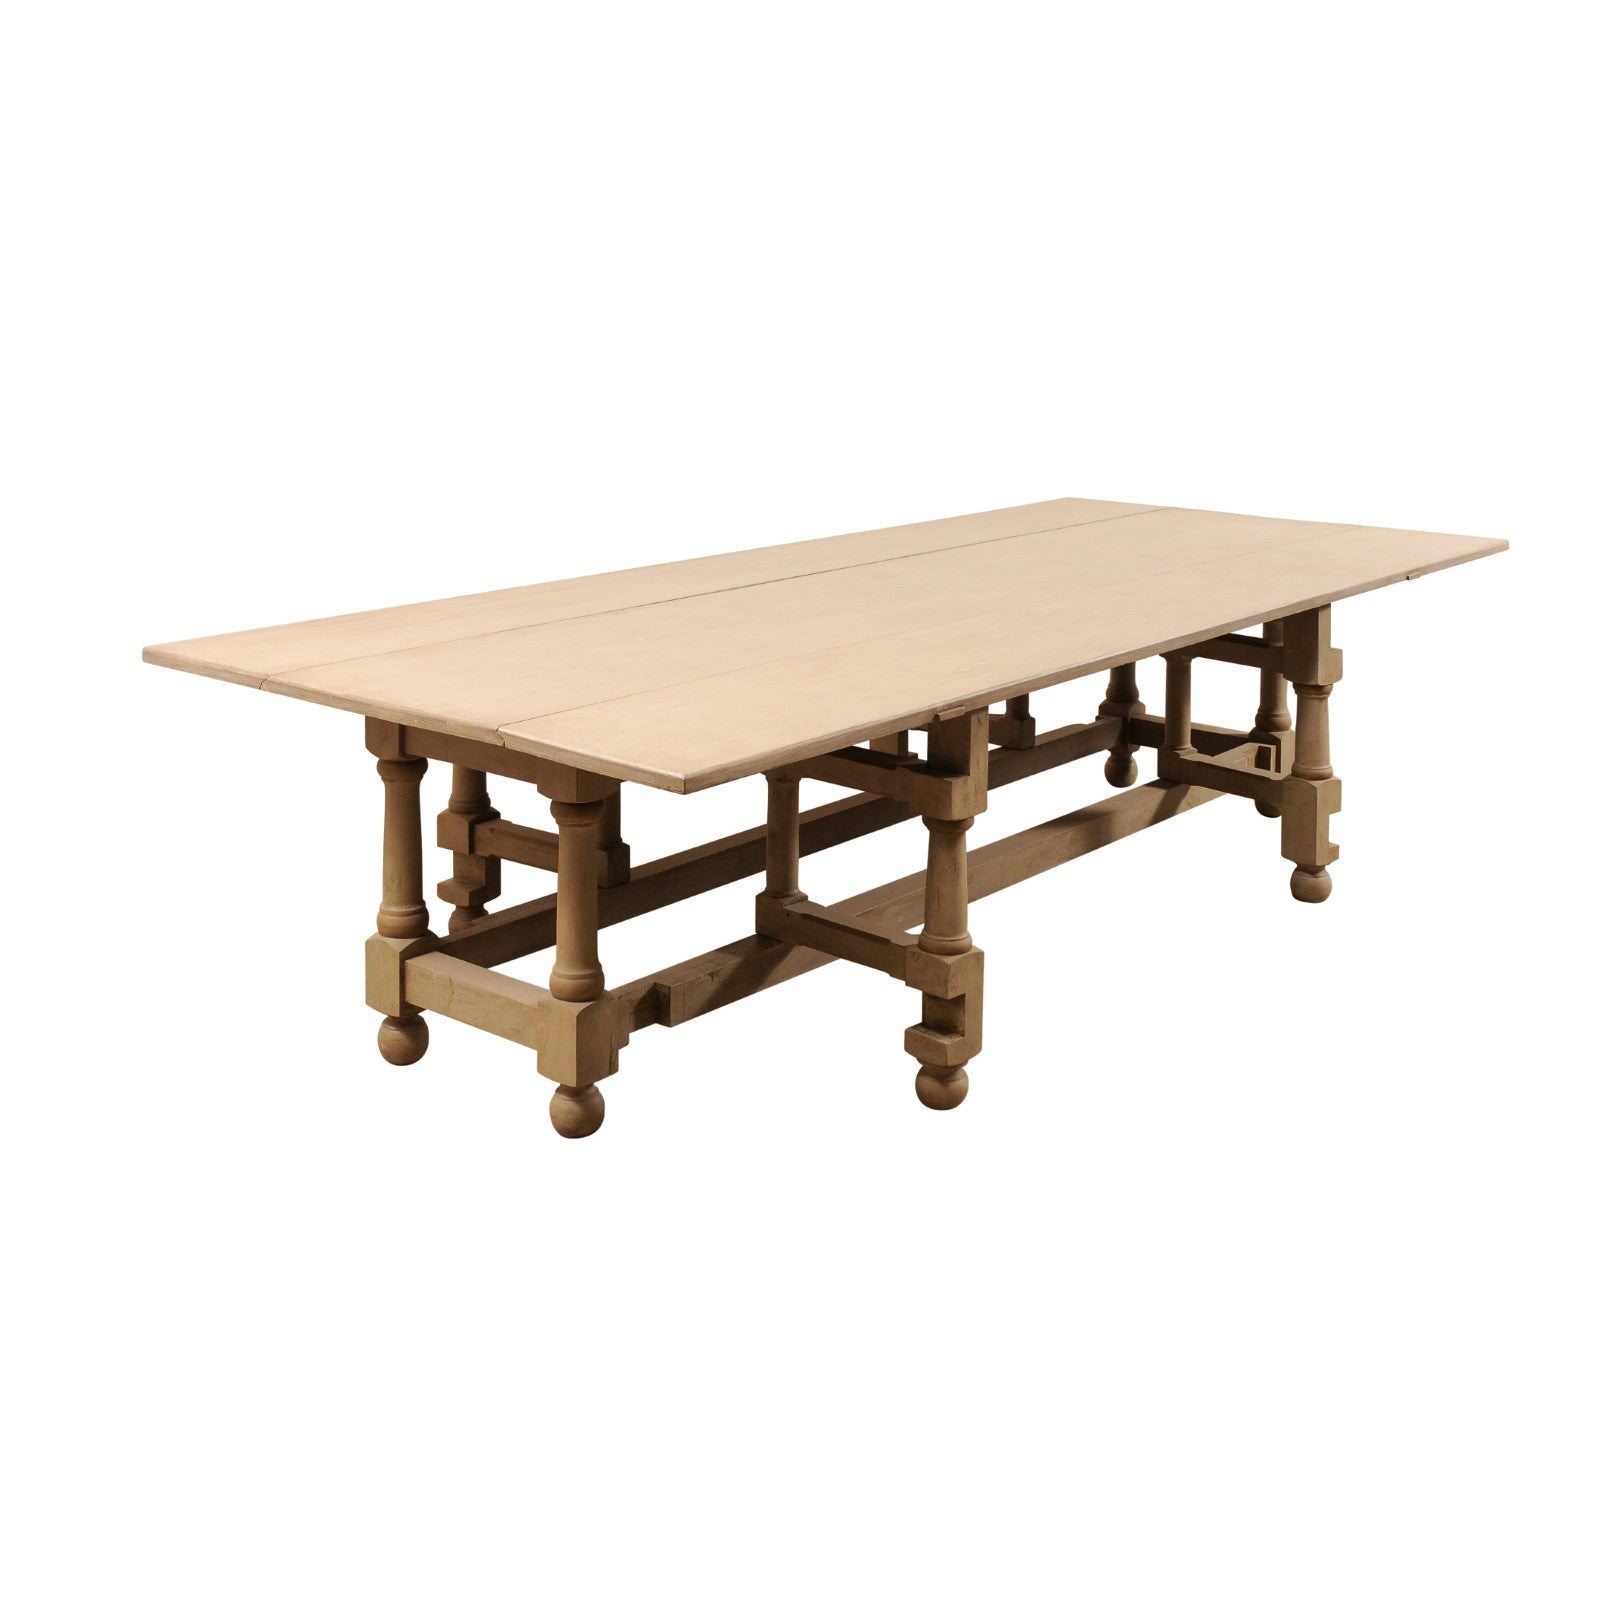 Large painted poplar wood gate leg dining table for sale at 1stdibs